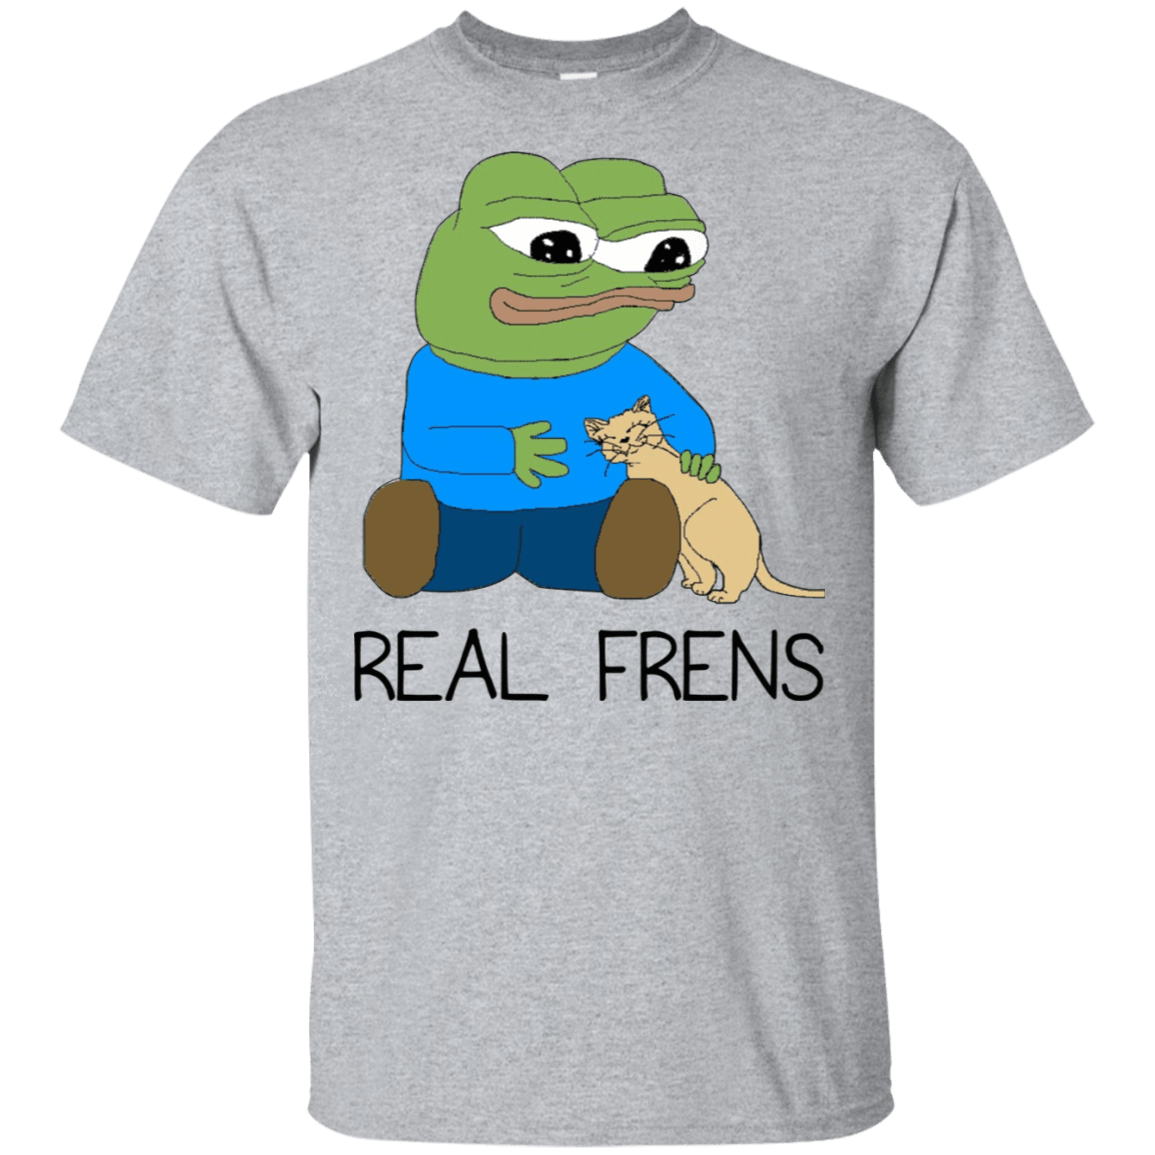 Real Frens 22-115-73889414-254 - Tee Ript